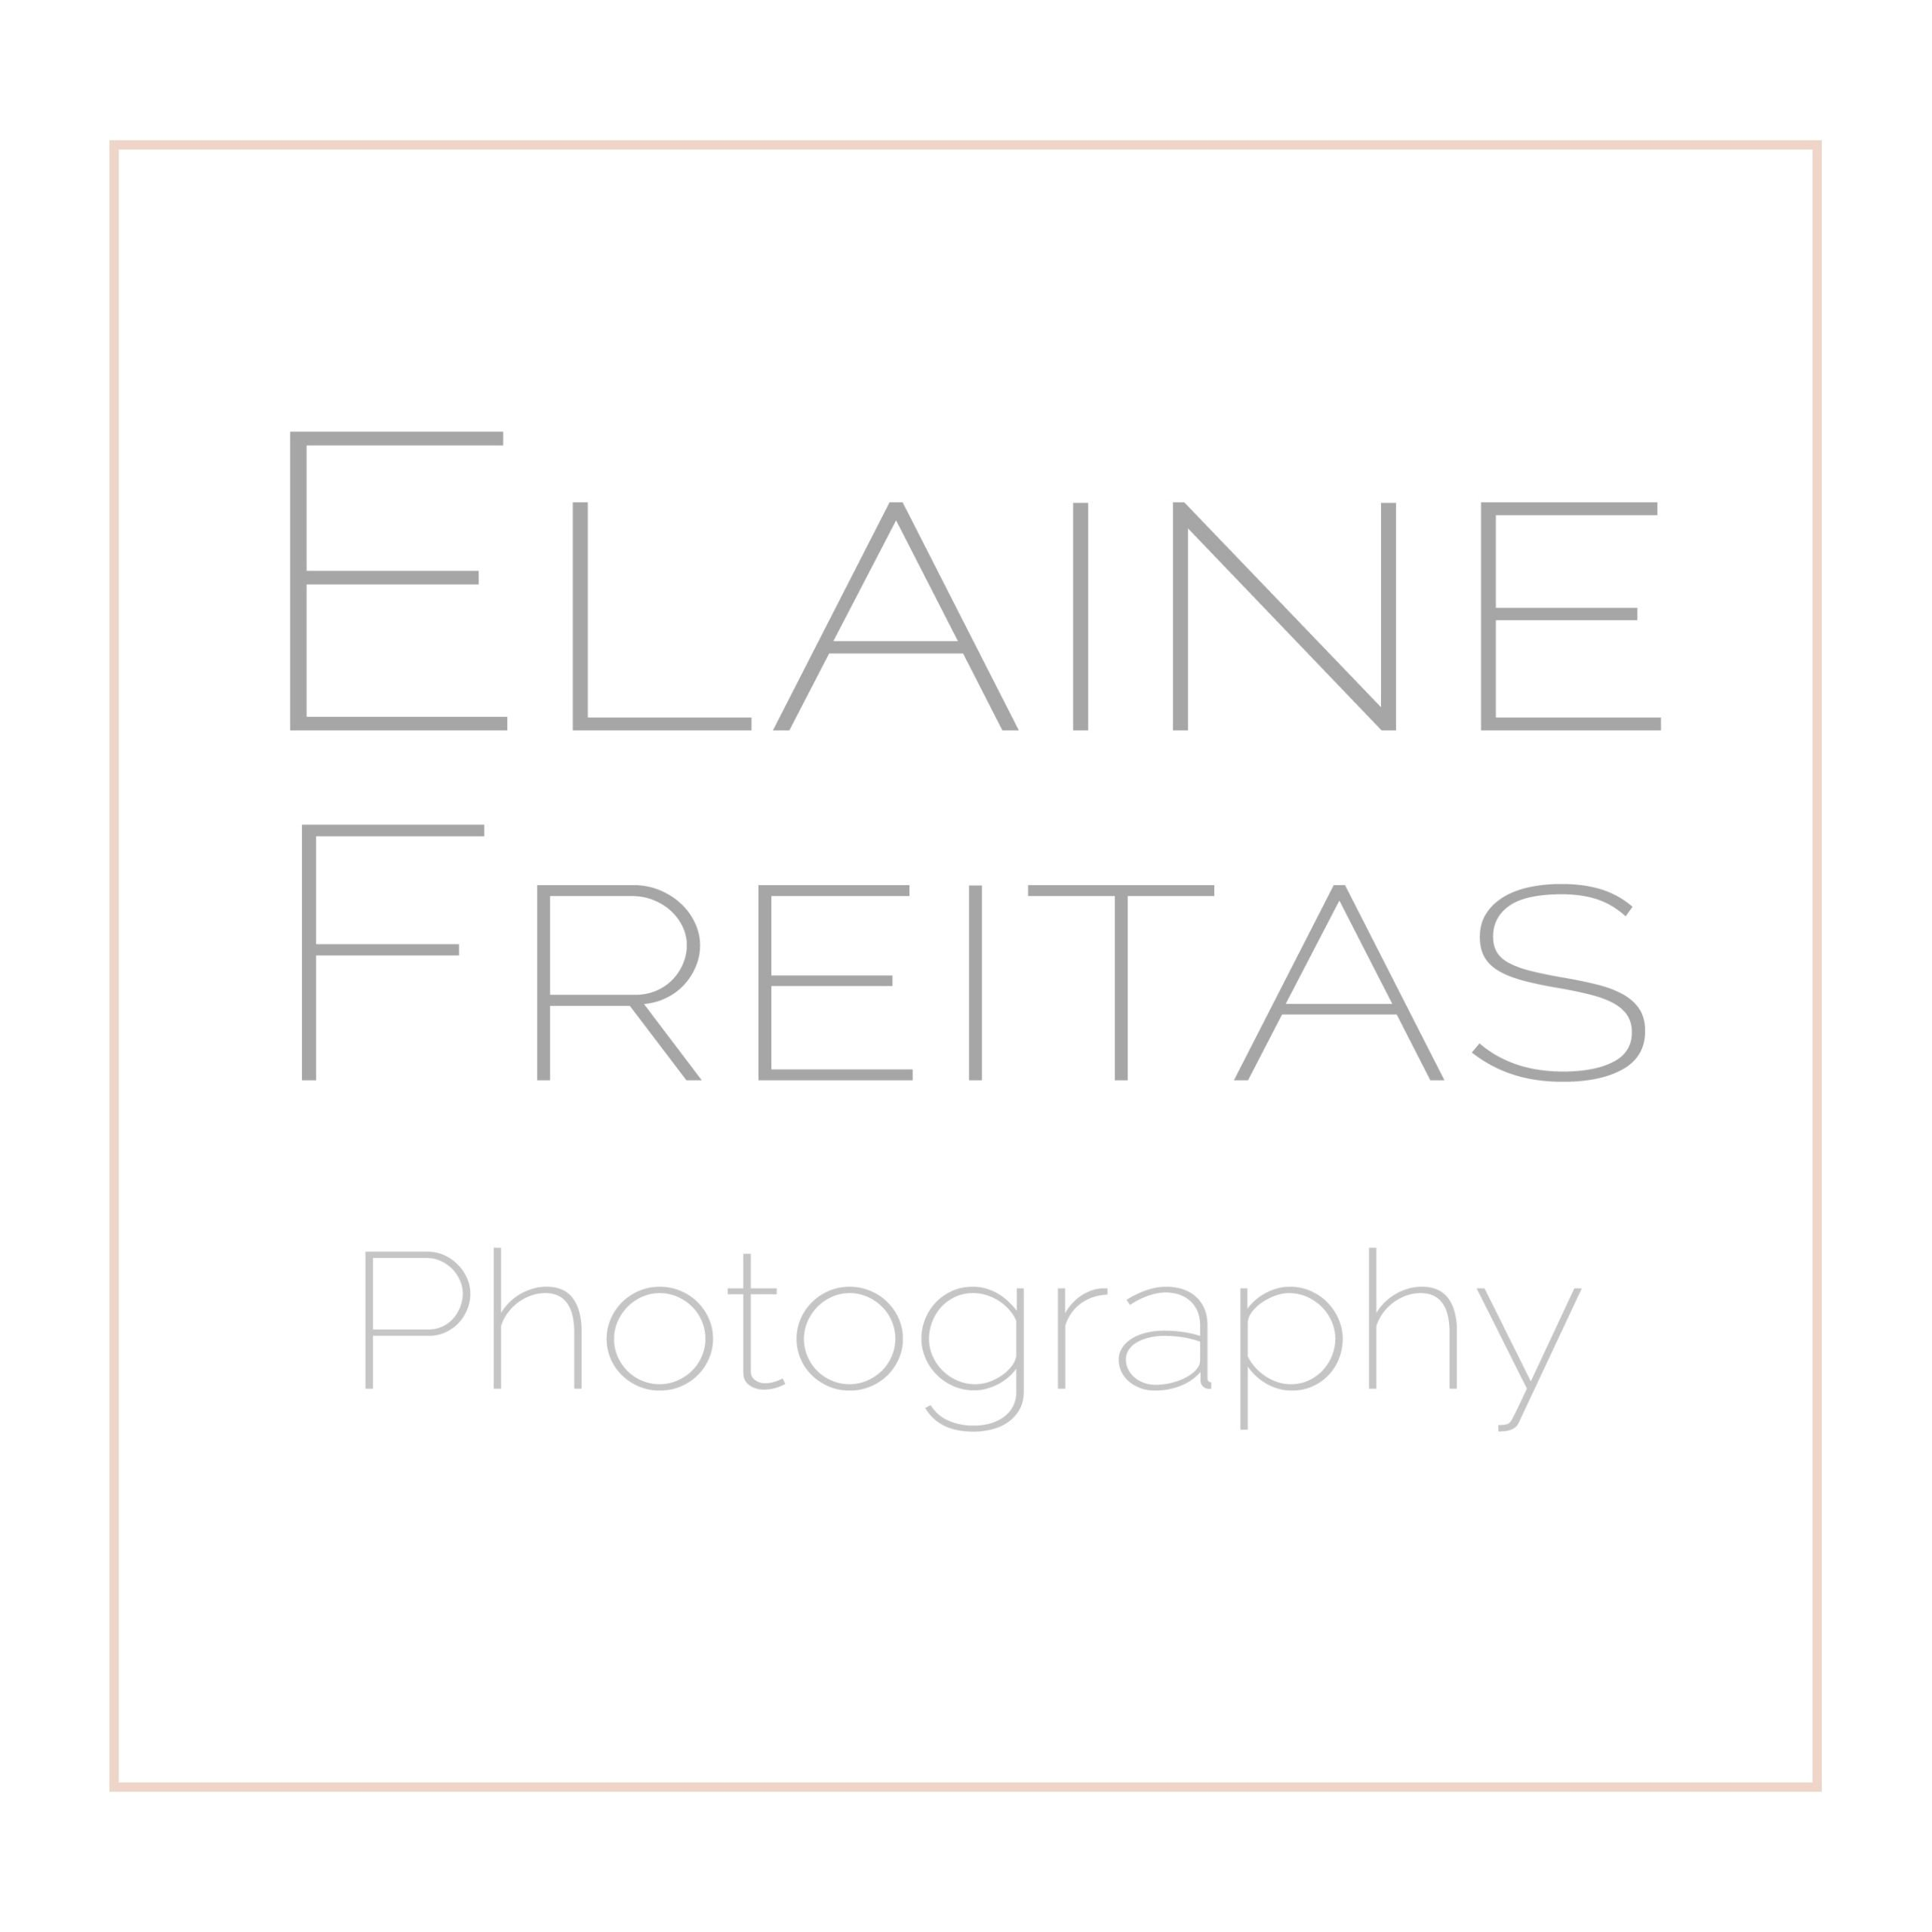 Elaine Freitas Photography